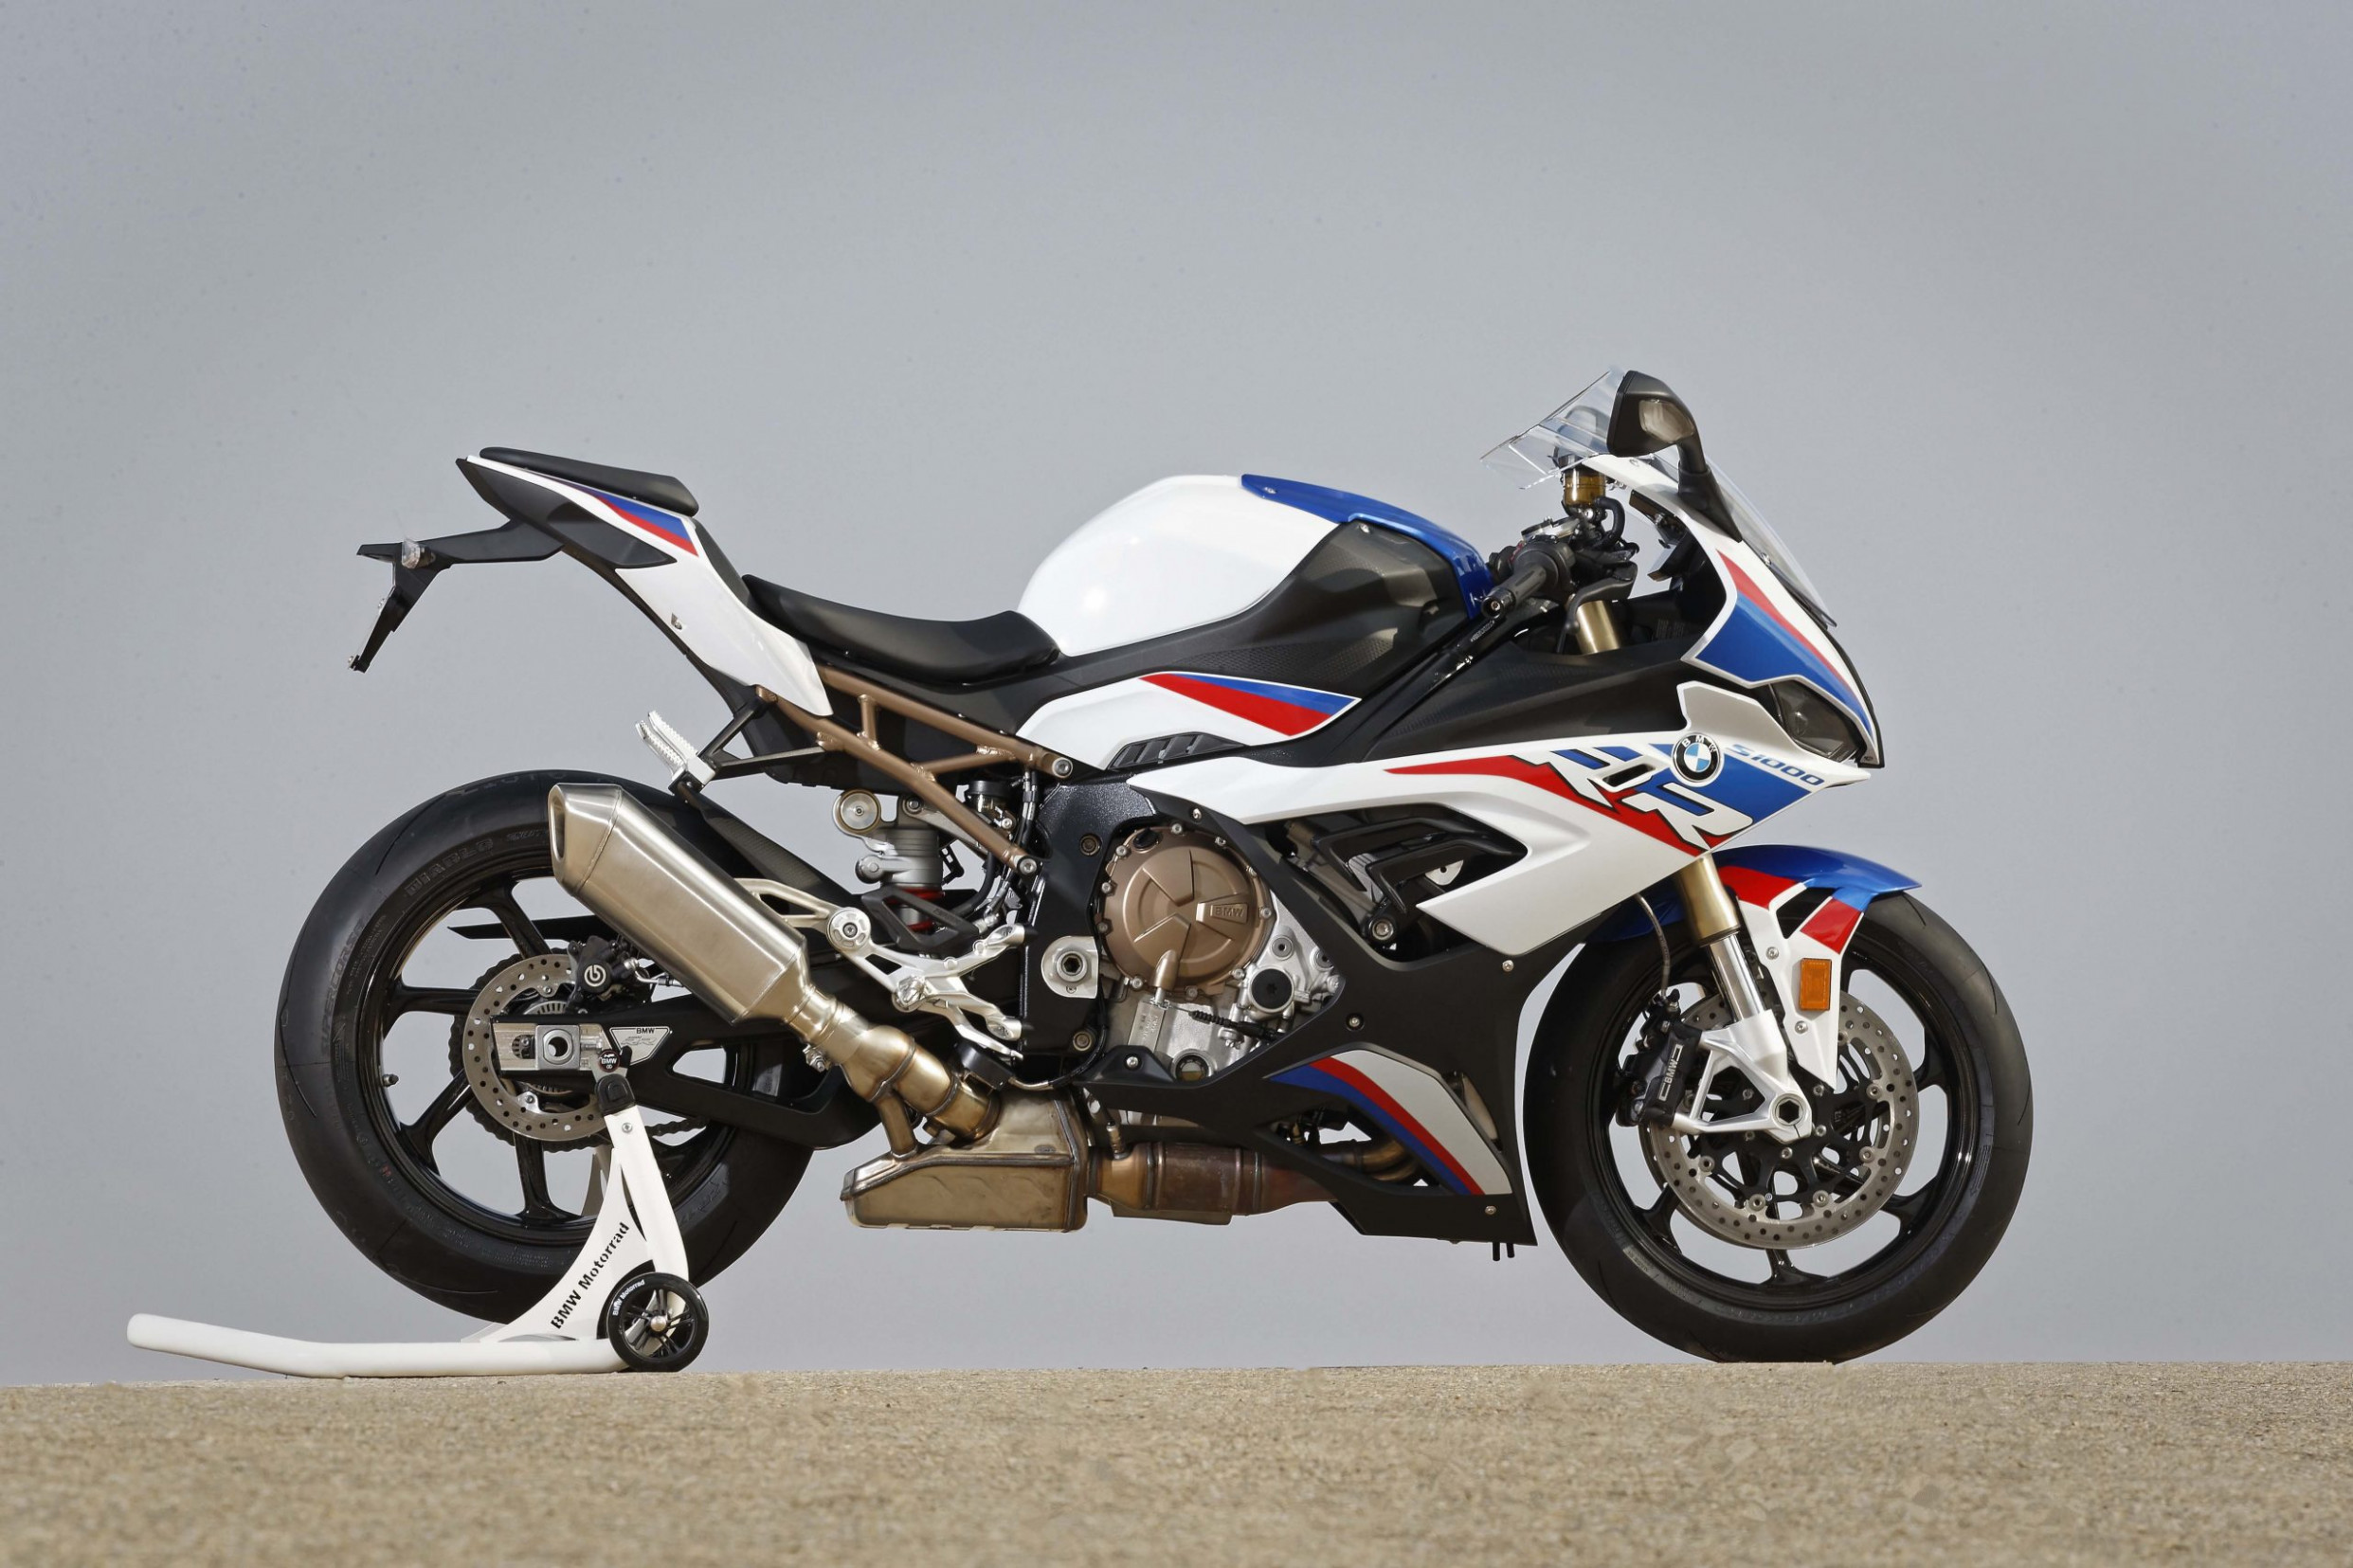 10 BMW S10RR Priced for the USA at $10,10* - Asphalt & Rubber - bmw hp4 2020